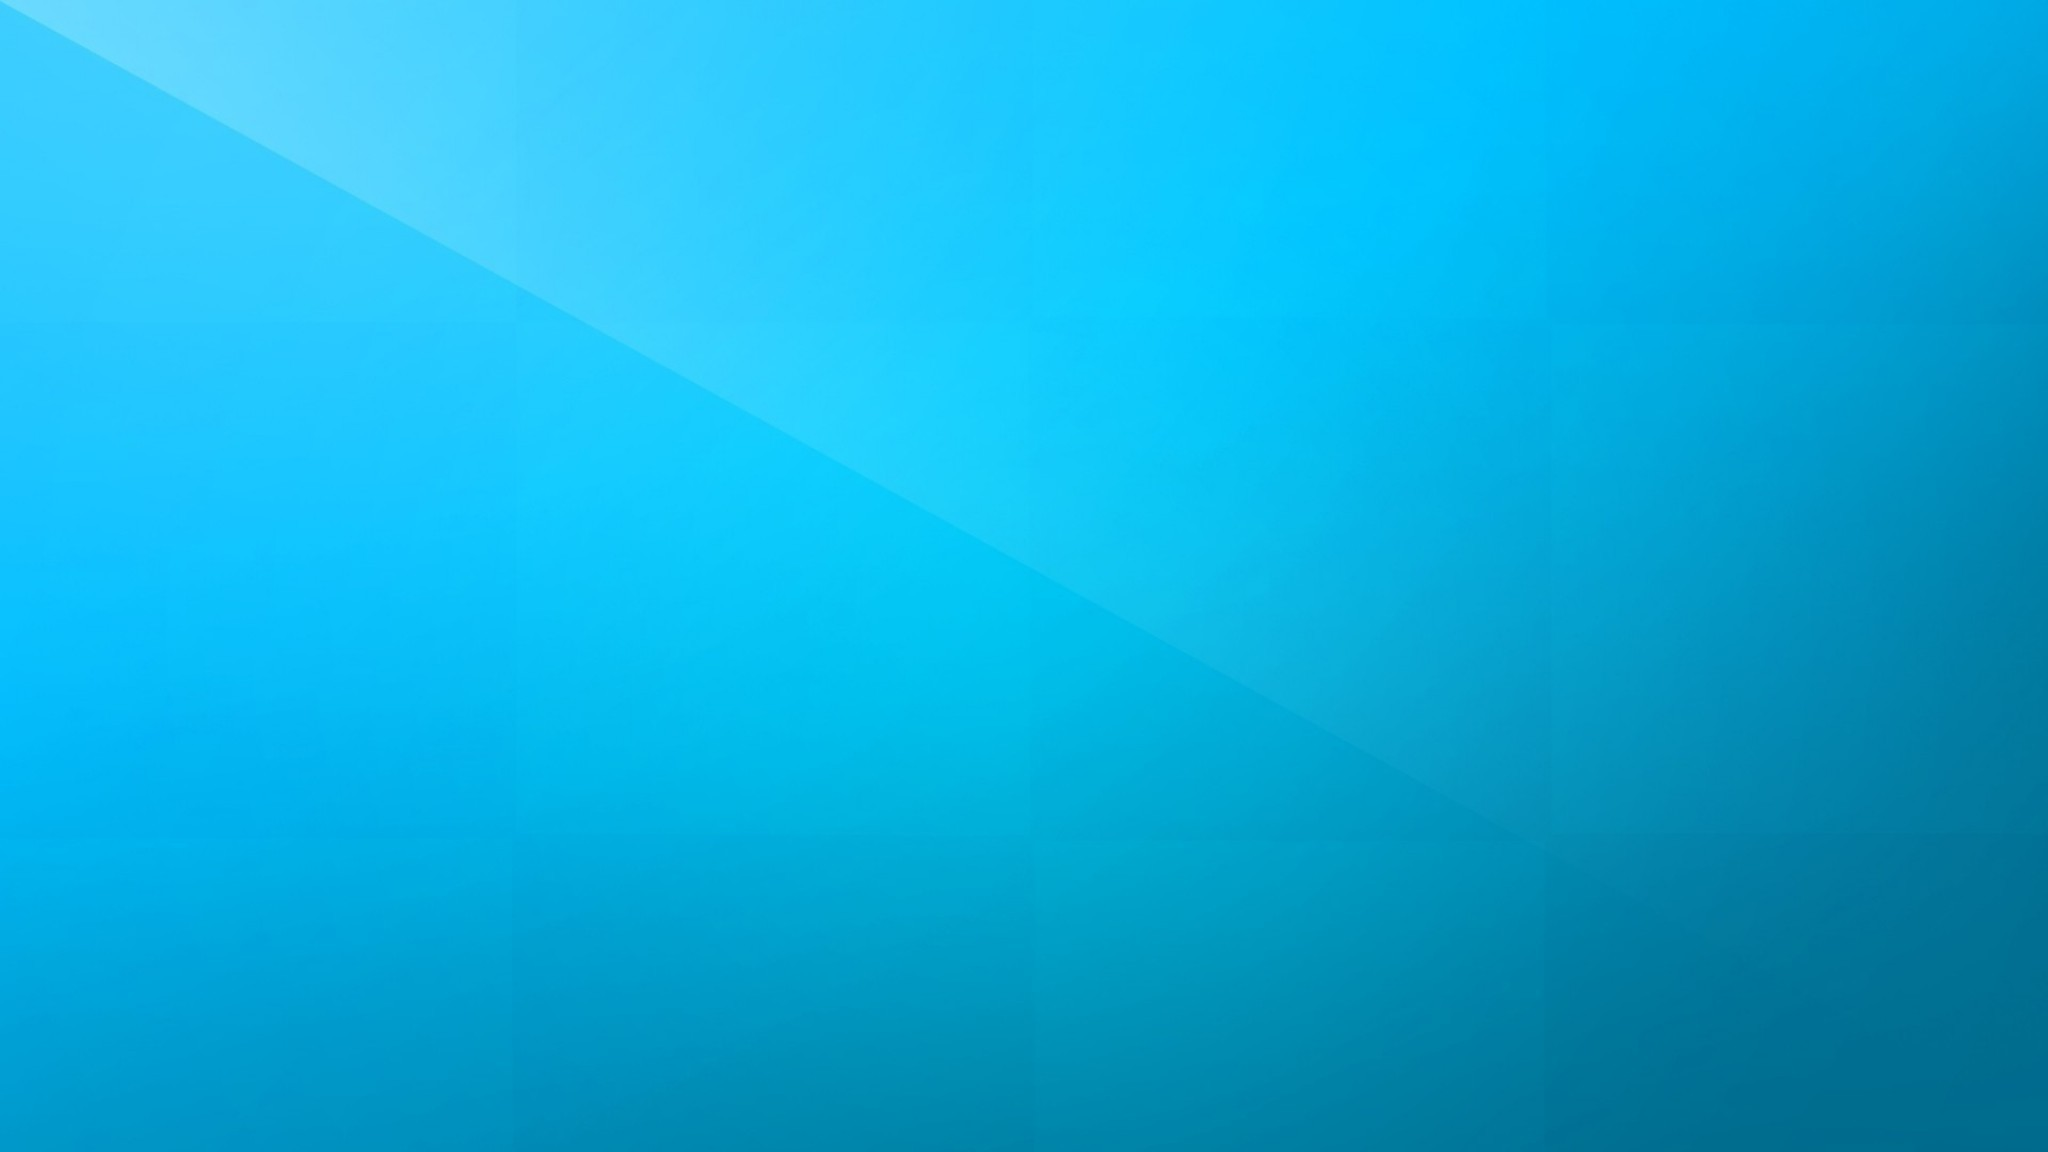 Solid Color Background 21964